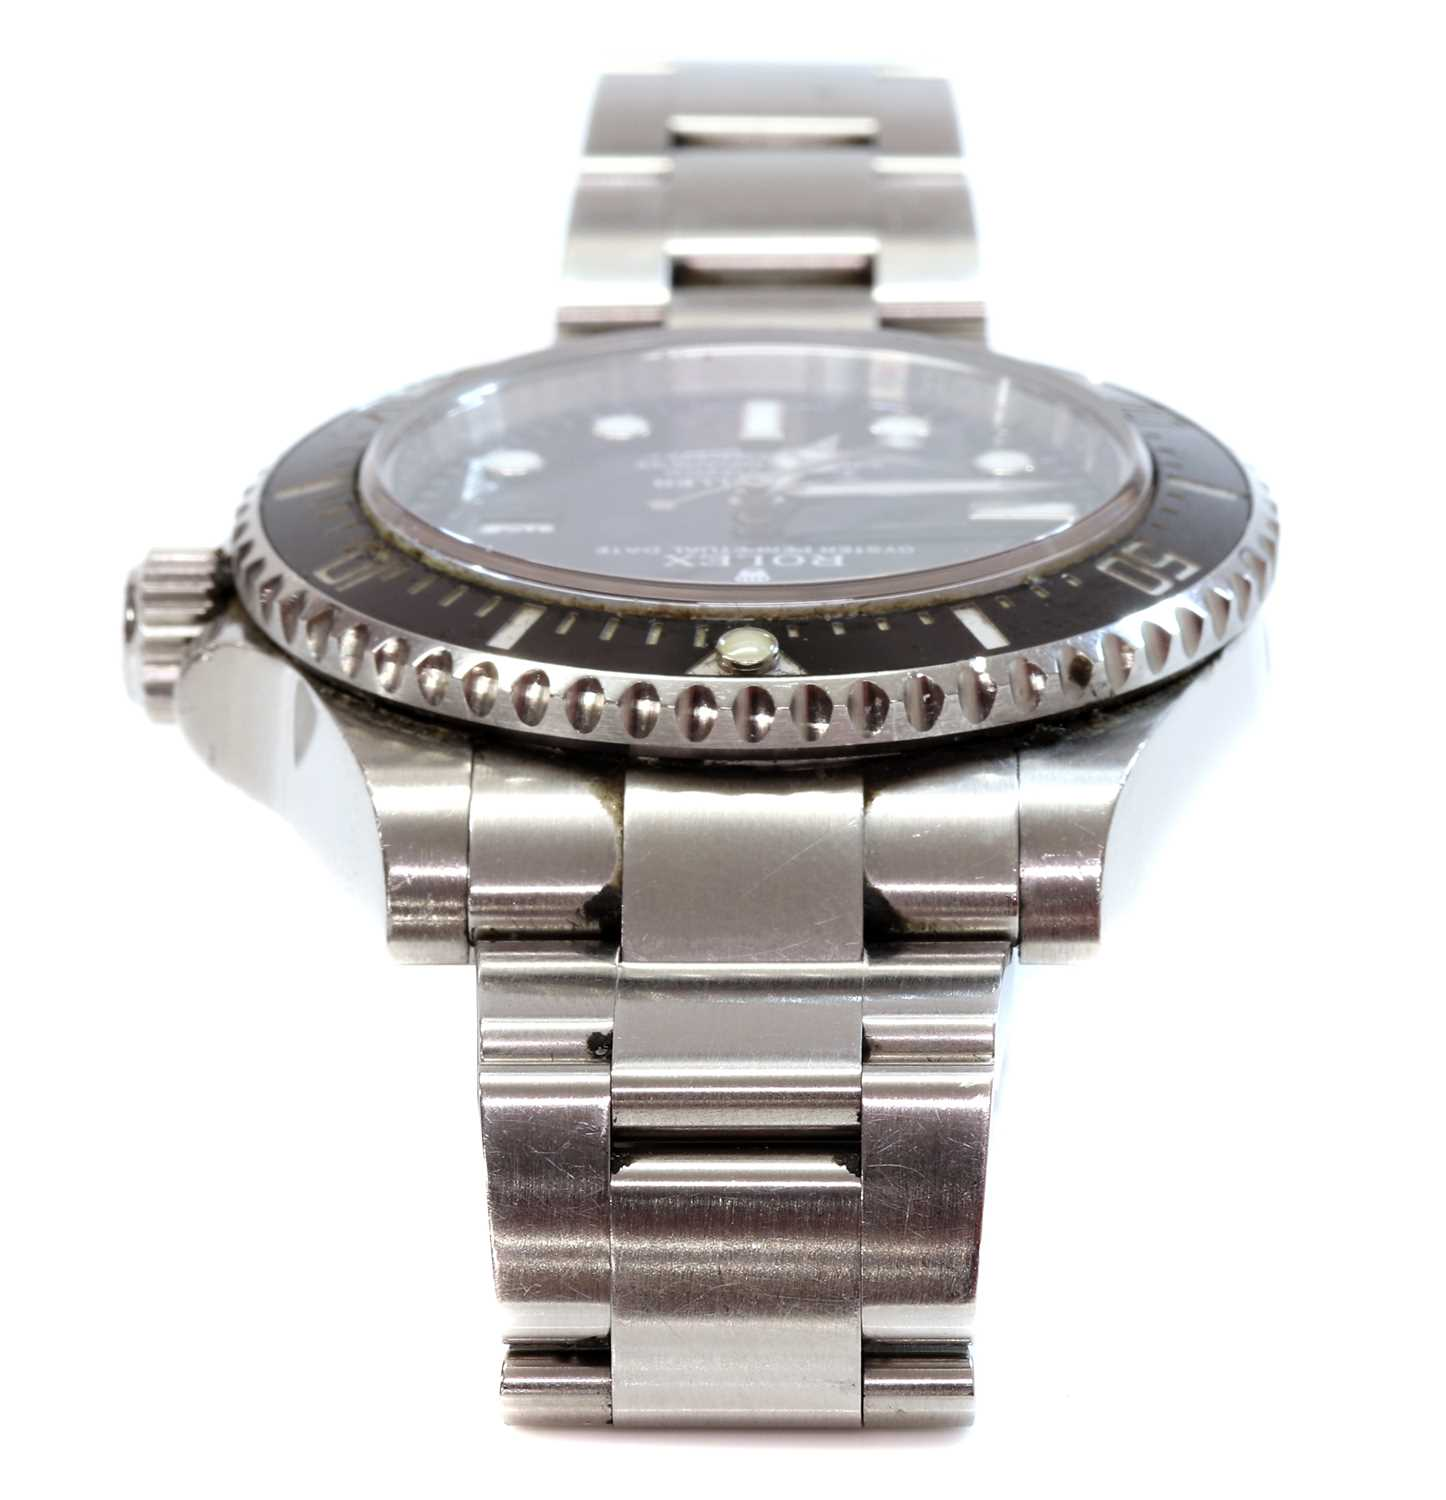 A gentlemen's stainless steel Rolex 'Oyster Perpetual Sea Dweller' automatic bracelet watch, c.2015, - Image 5 of 14